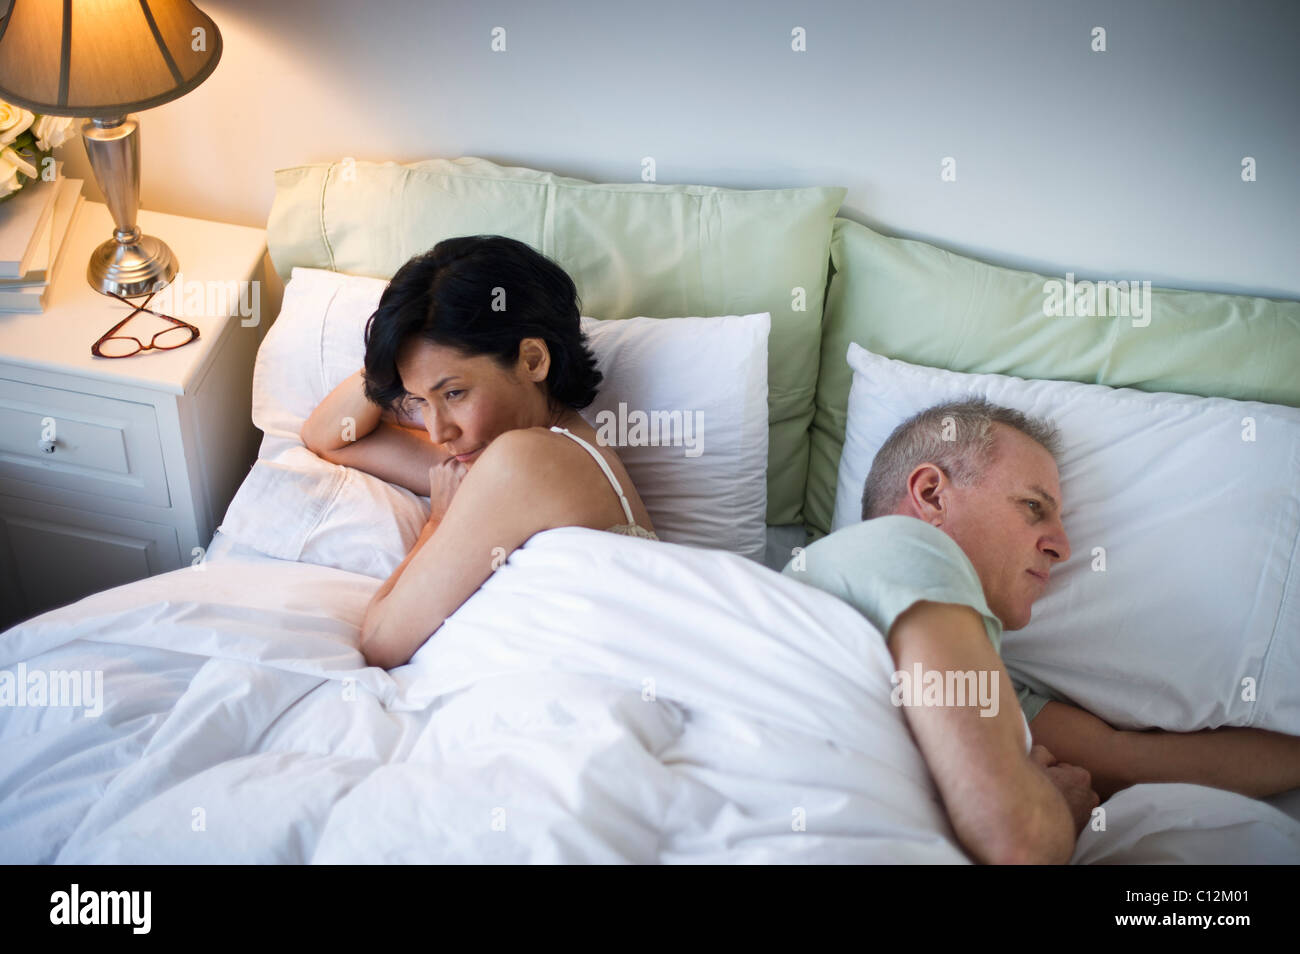 USA, New Jersey, Jersey City, Mature couple laying in bed after argument - Stock Image